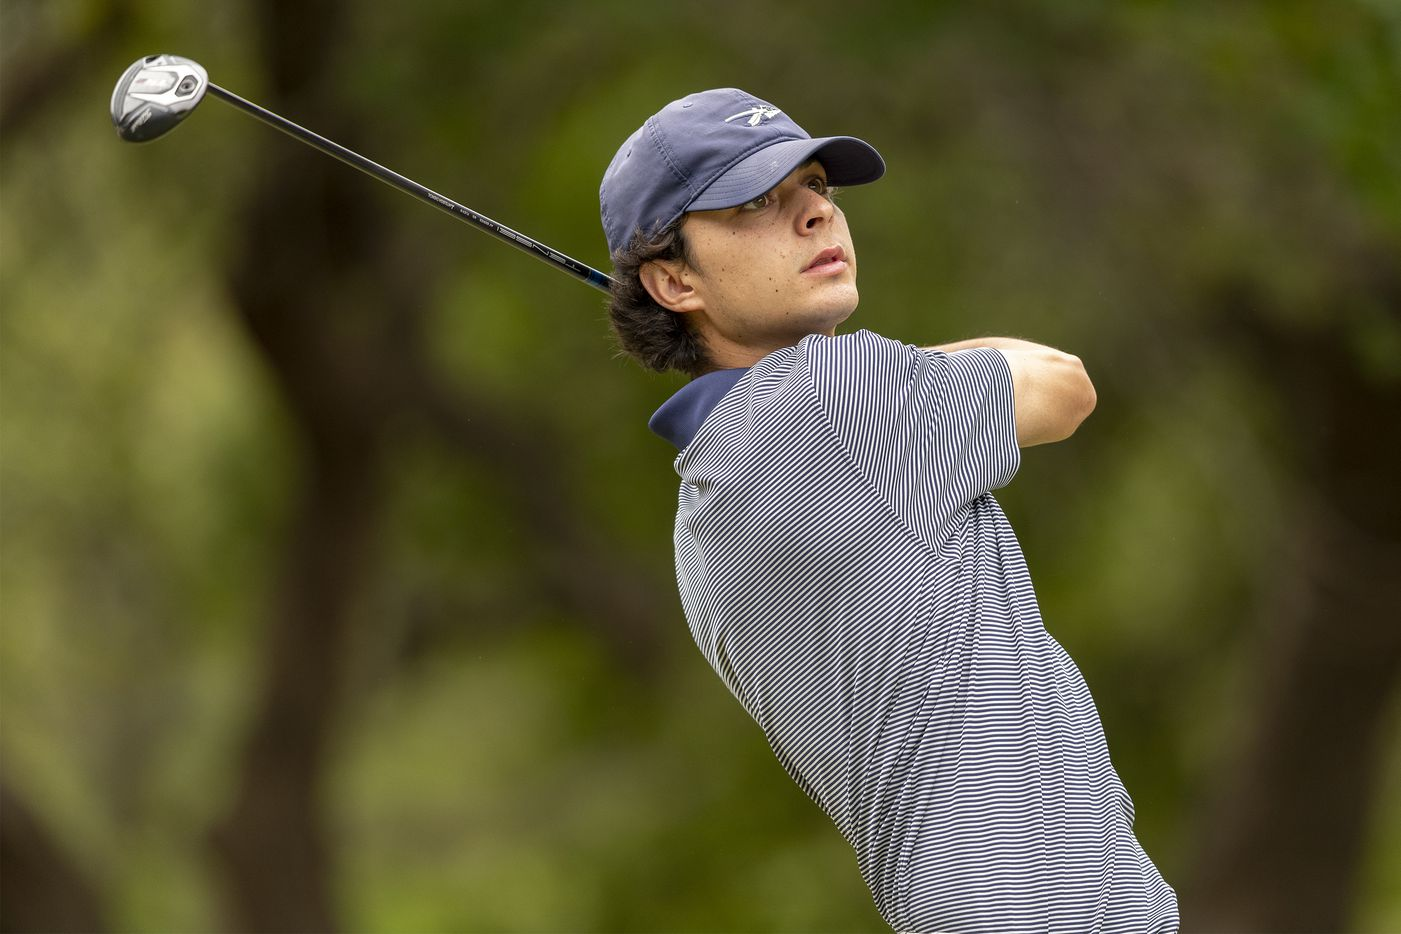 KellerÕs Jackson Naeger hits from the 1st tee box during the final round of the UIL Class 6A boys golf tournament in Georgetown, Tuesday, May 18, 2021. (Stephen Spillman/Special Contributor)